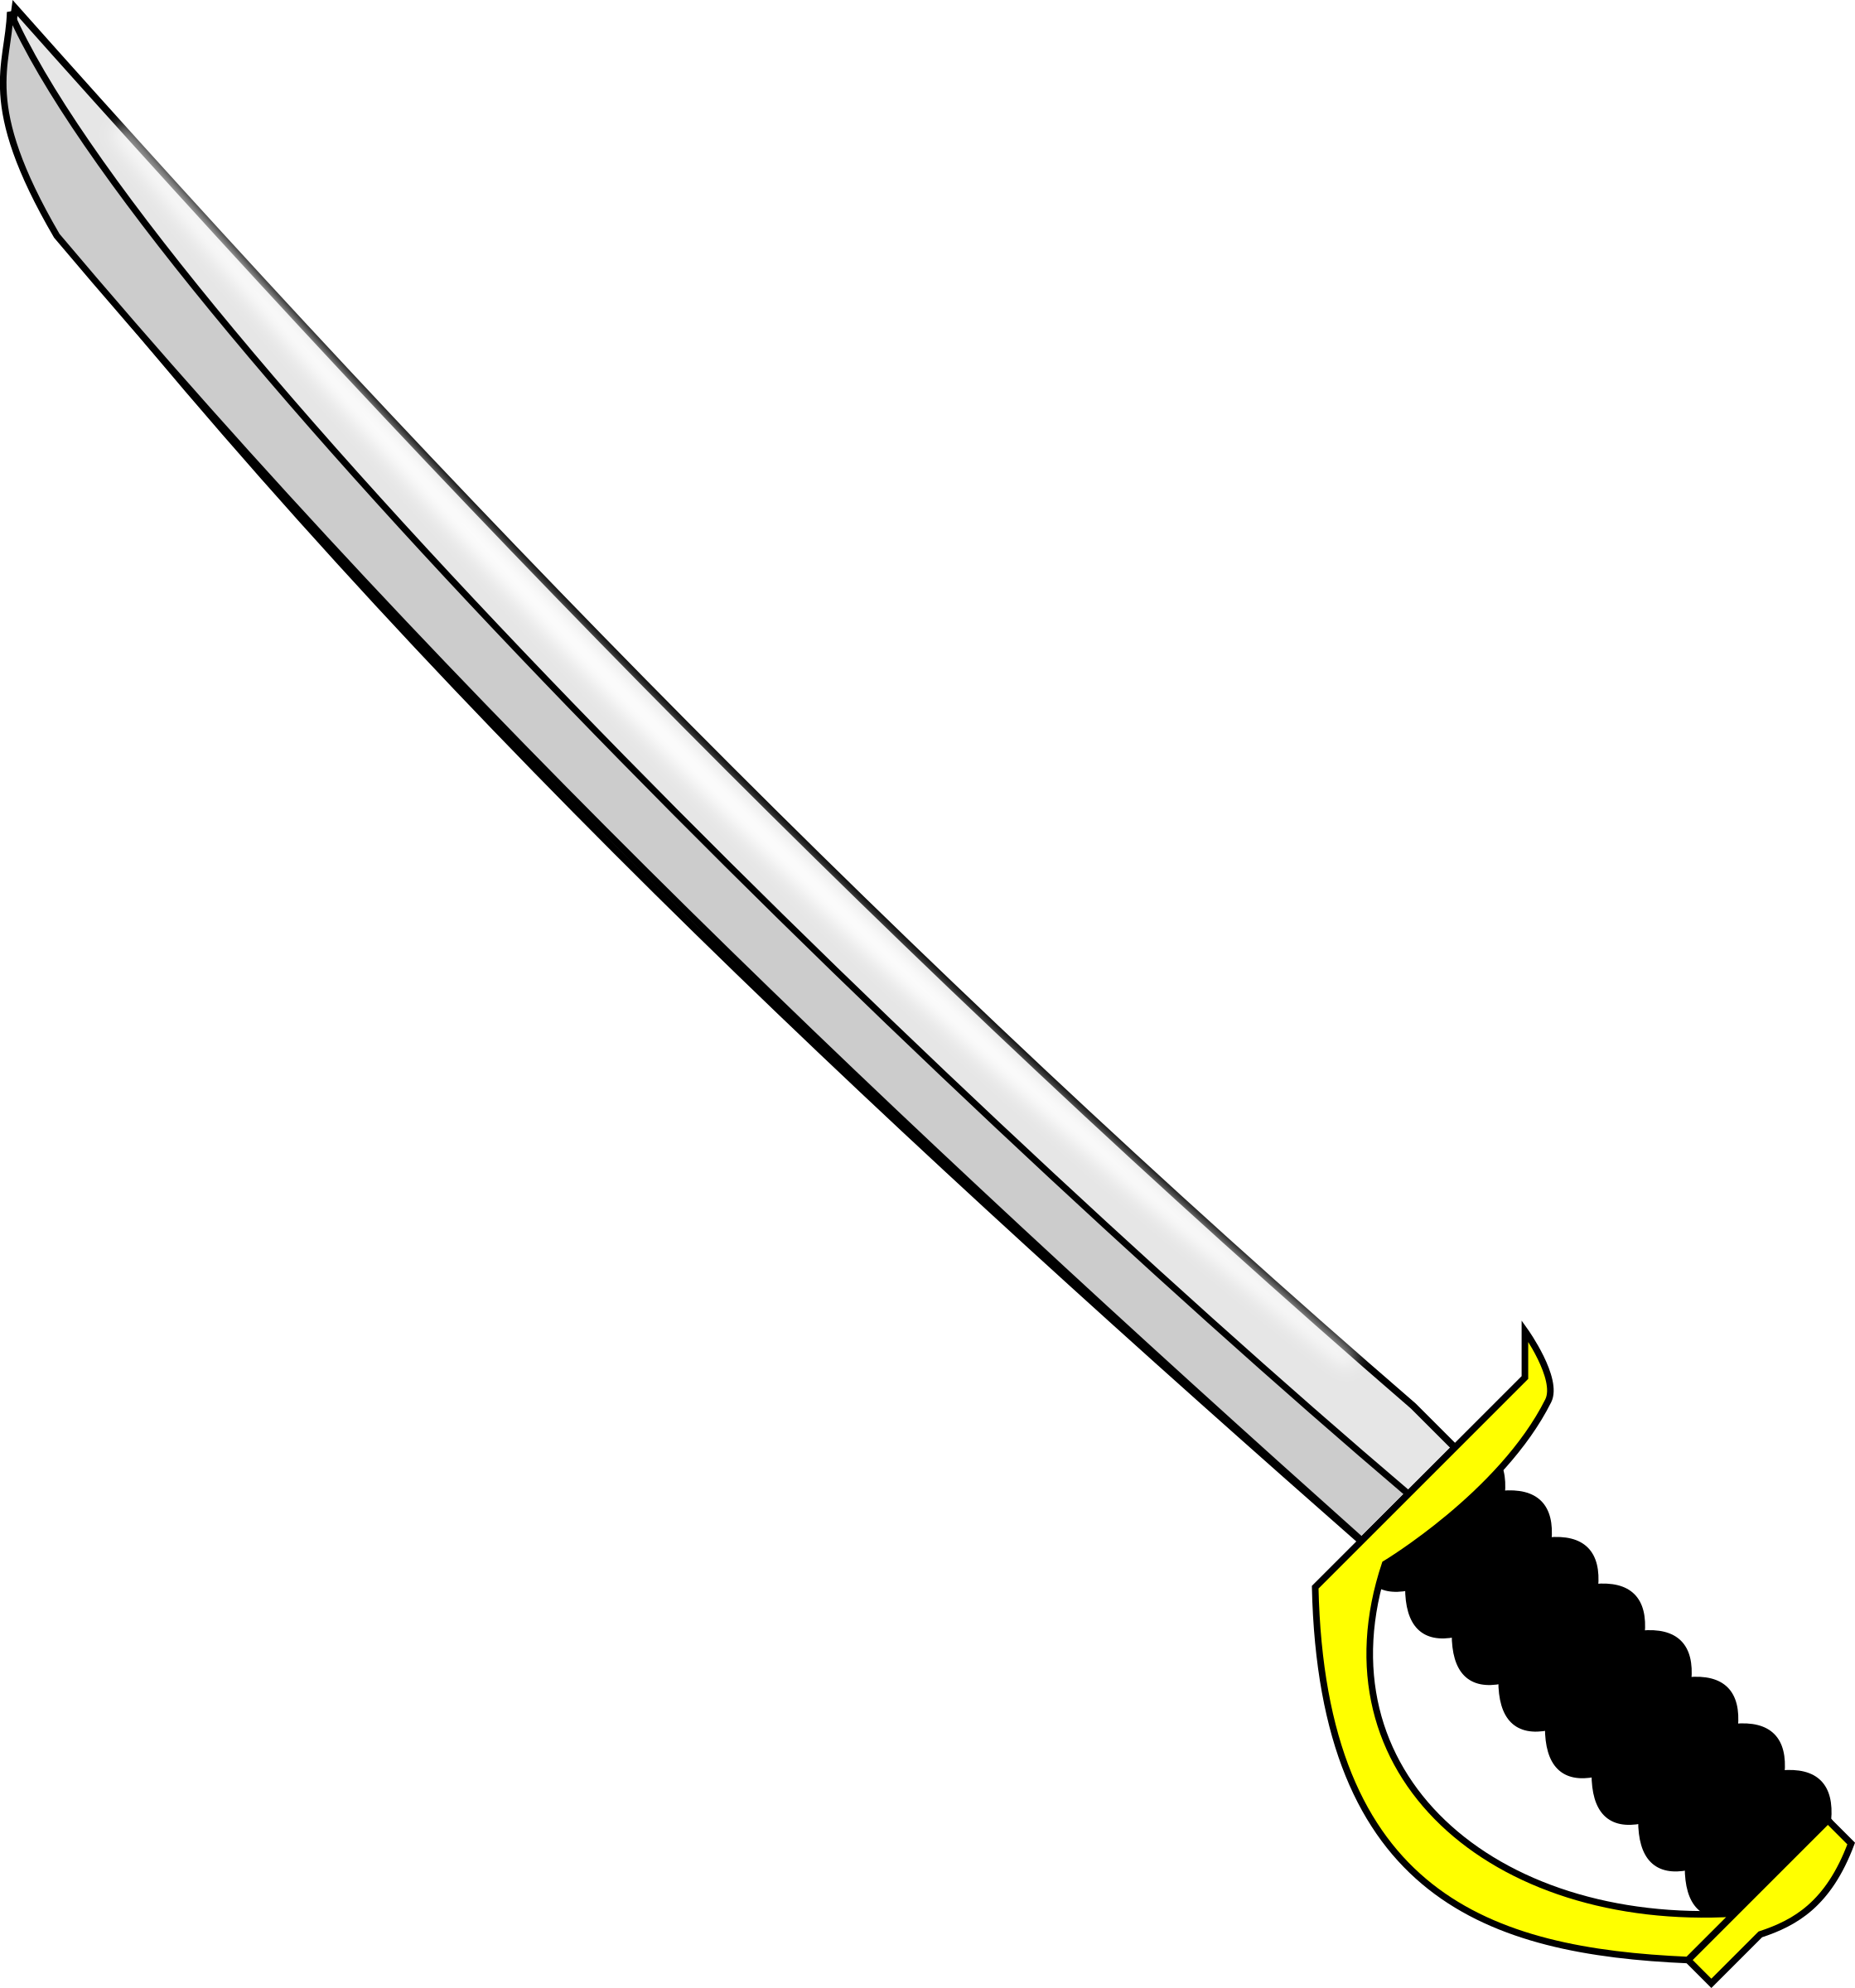 clip freeuse library Saber clipart. Big image png.